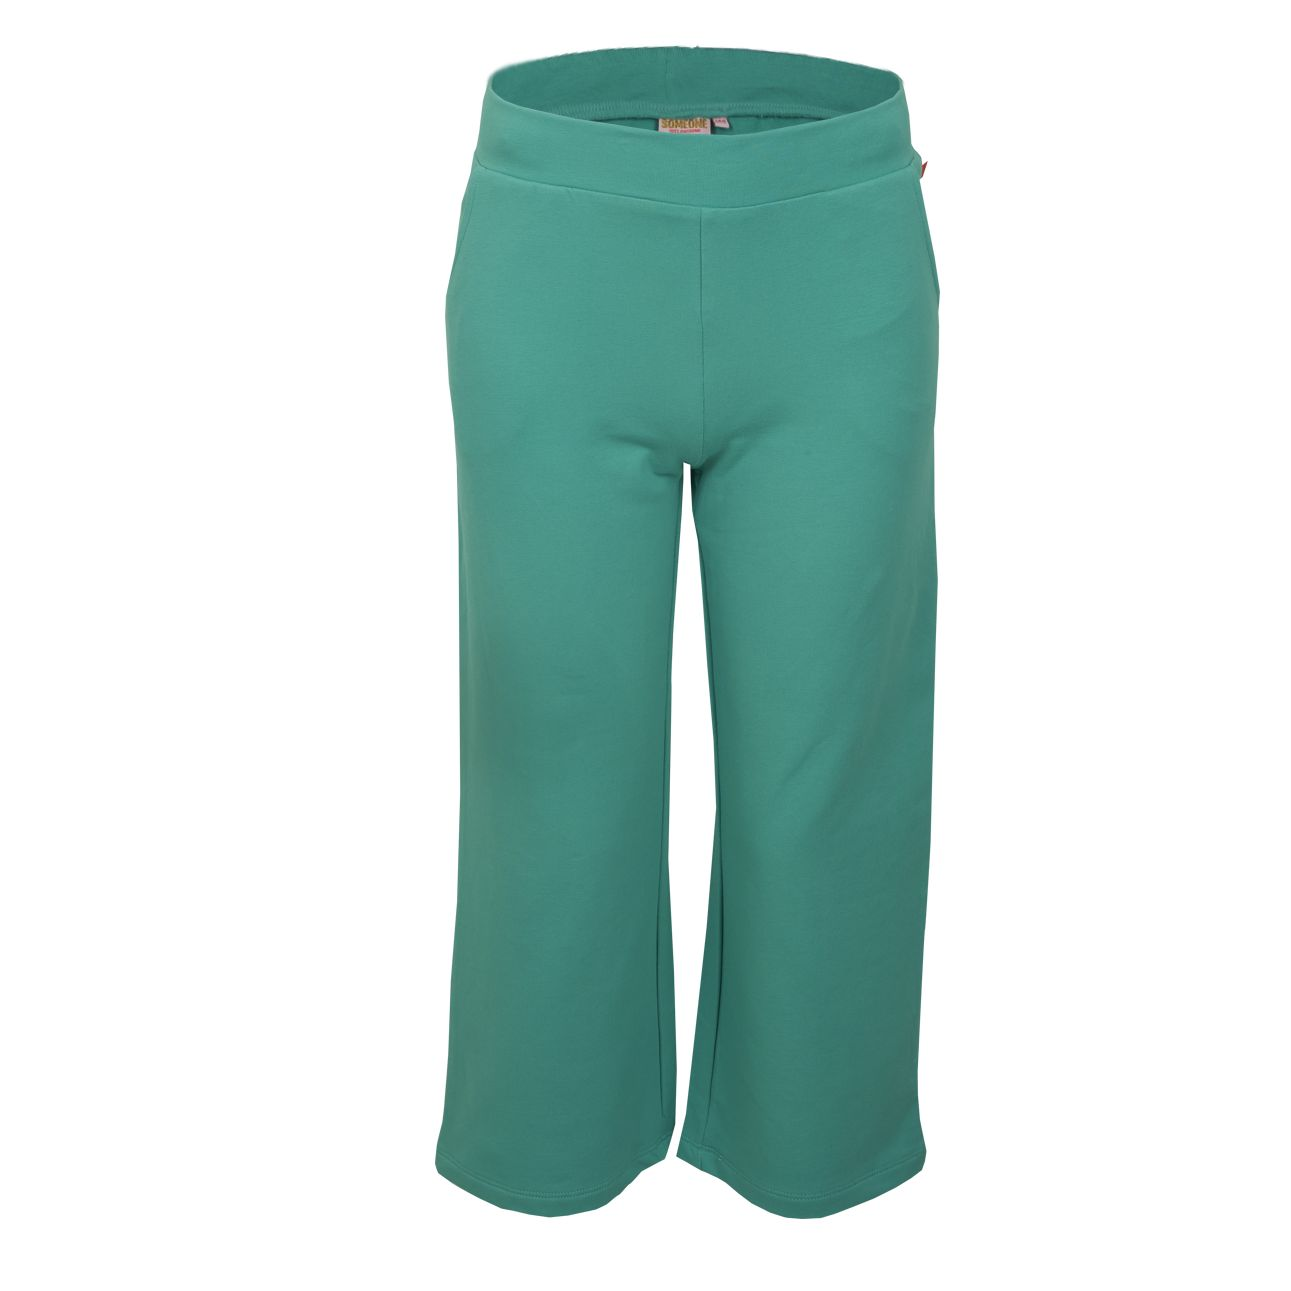 Culotte 140 Mint SOMEONE 100% Awesome